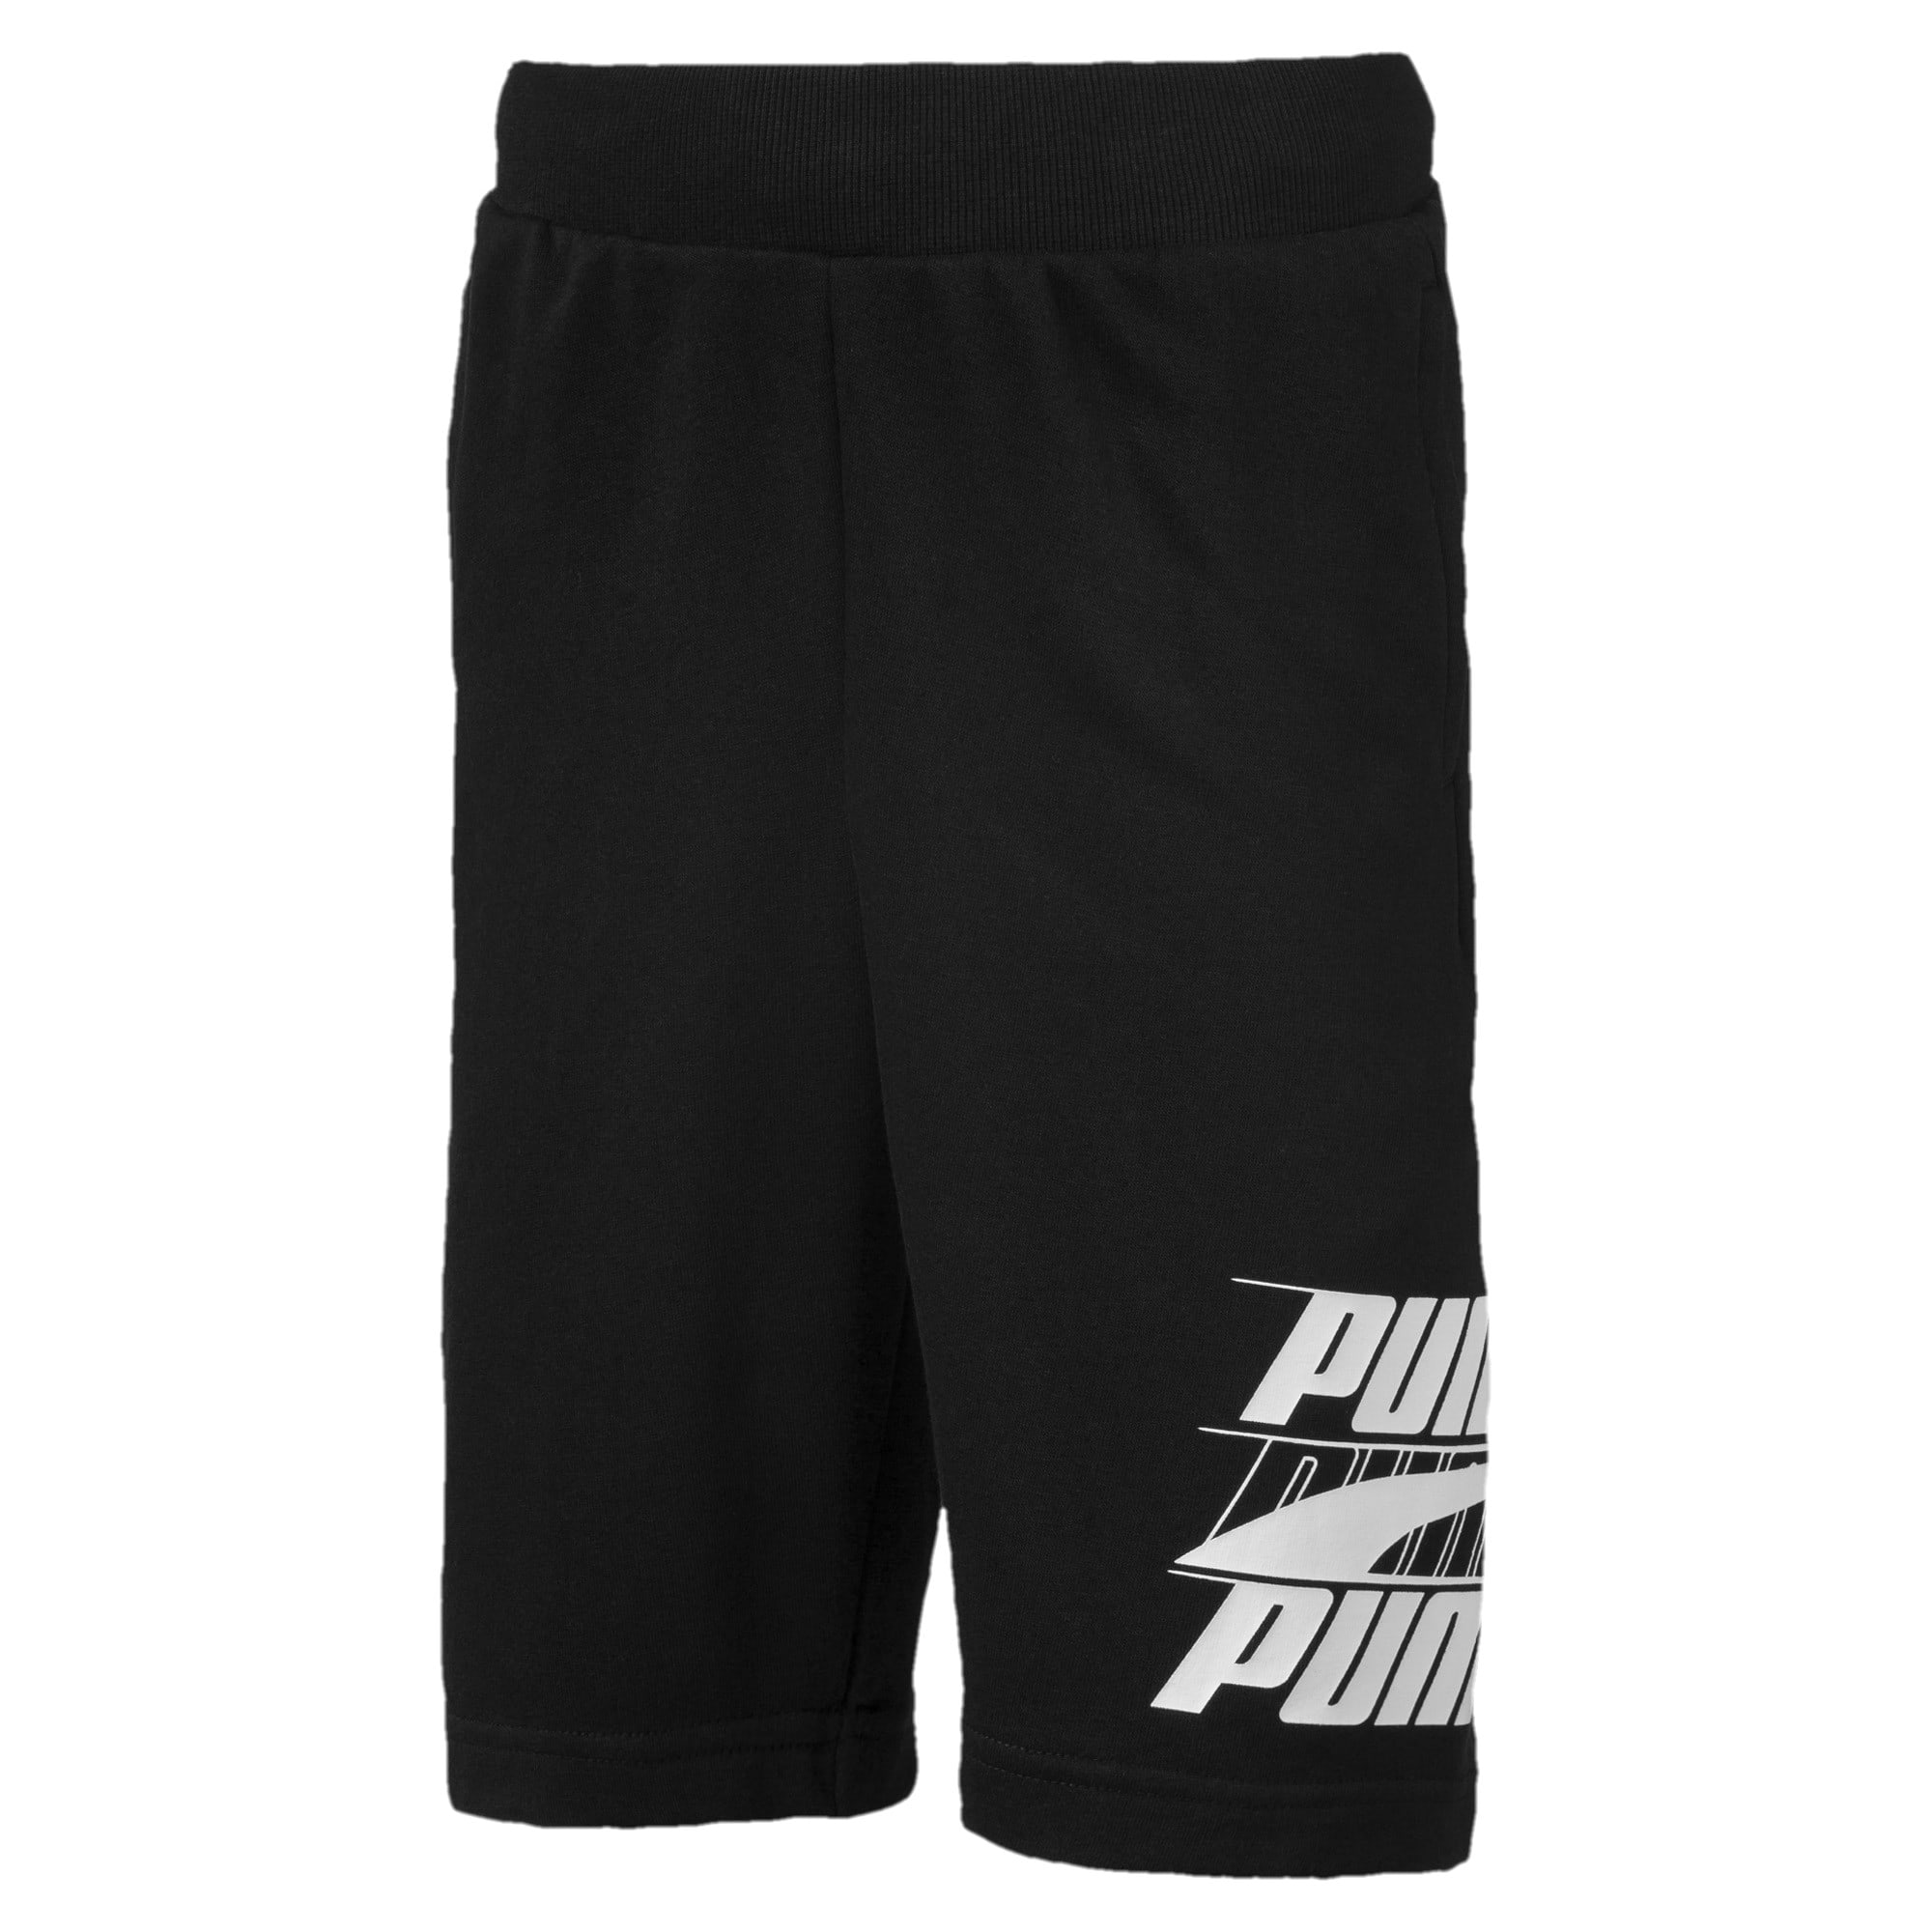 Rebel Bold Boys' Shorts, Cotton Black, large